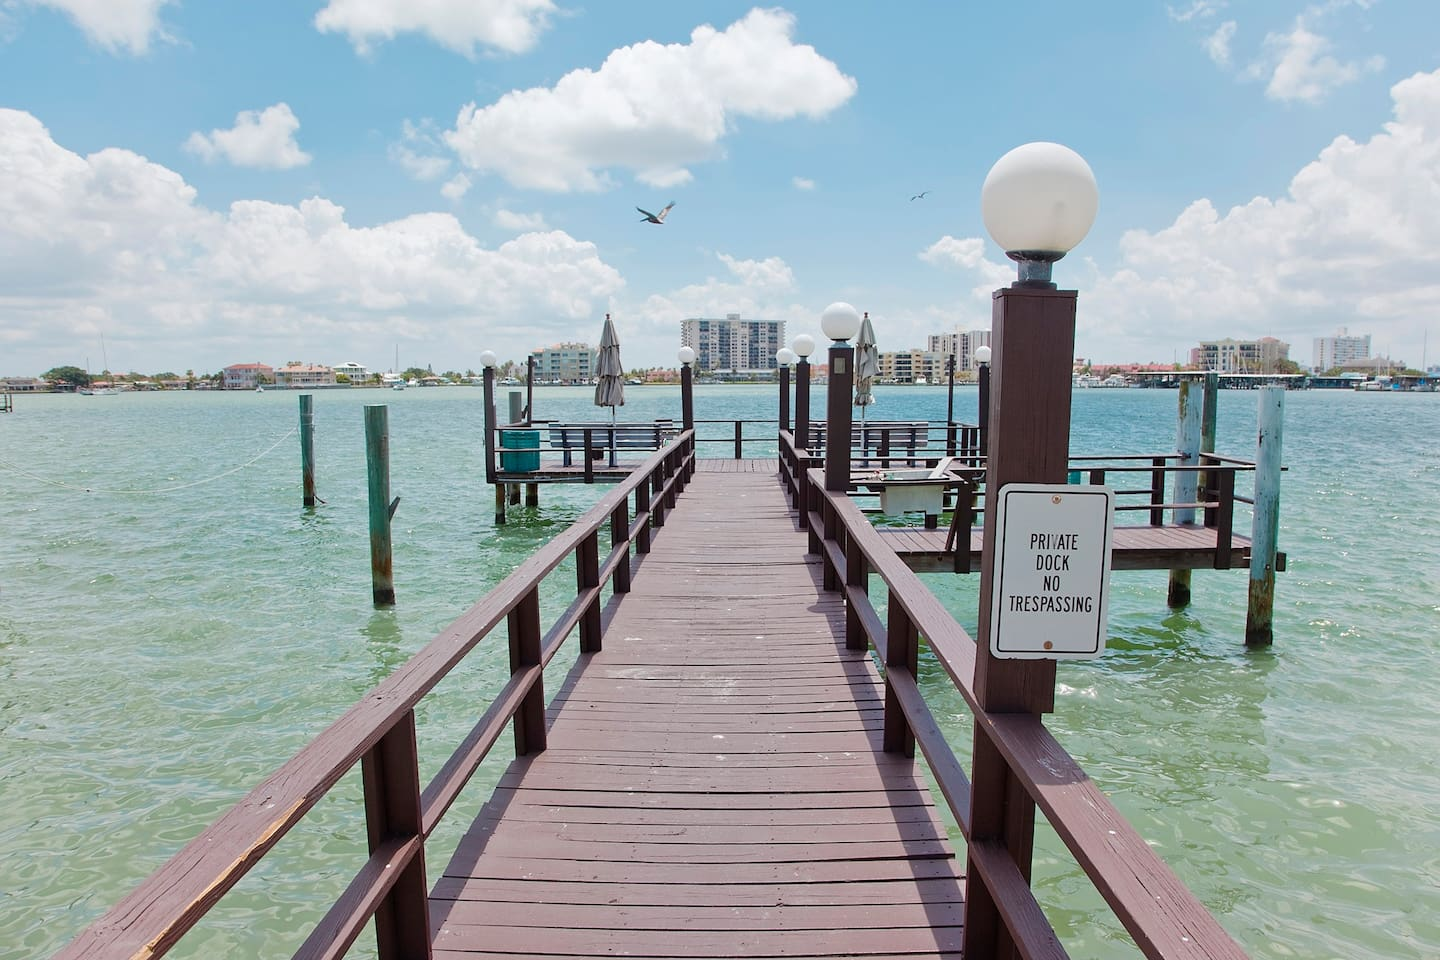 Private dock for fishing, boating or day dreaming